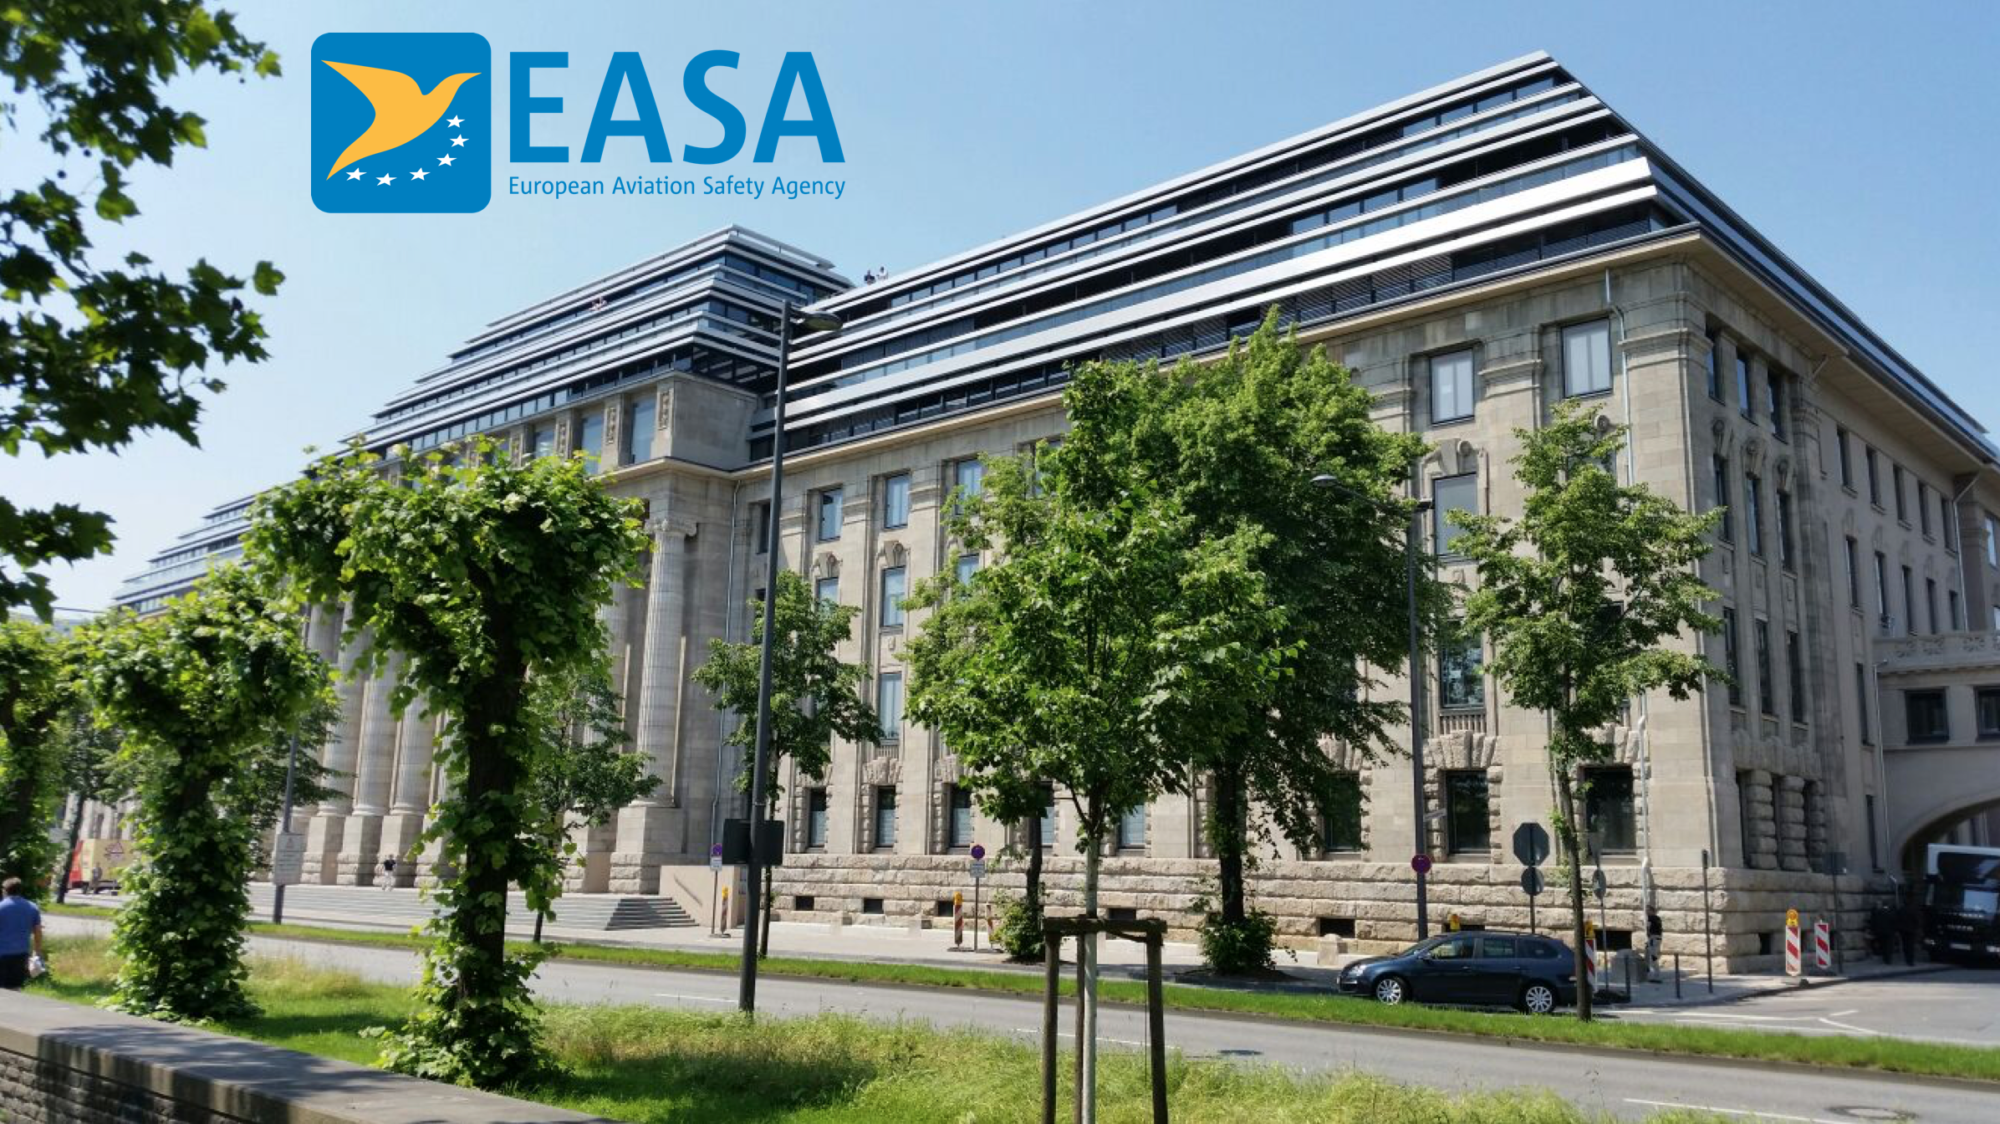 EASA's headquarters in Cologne, Germany.